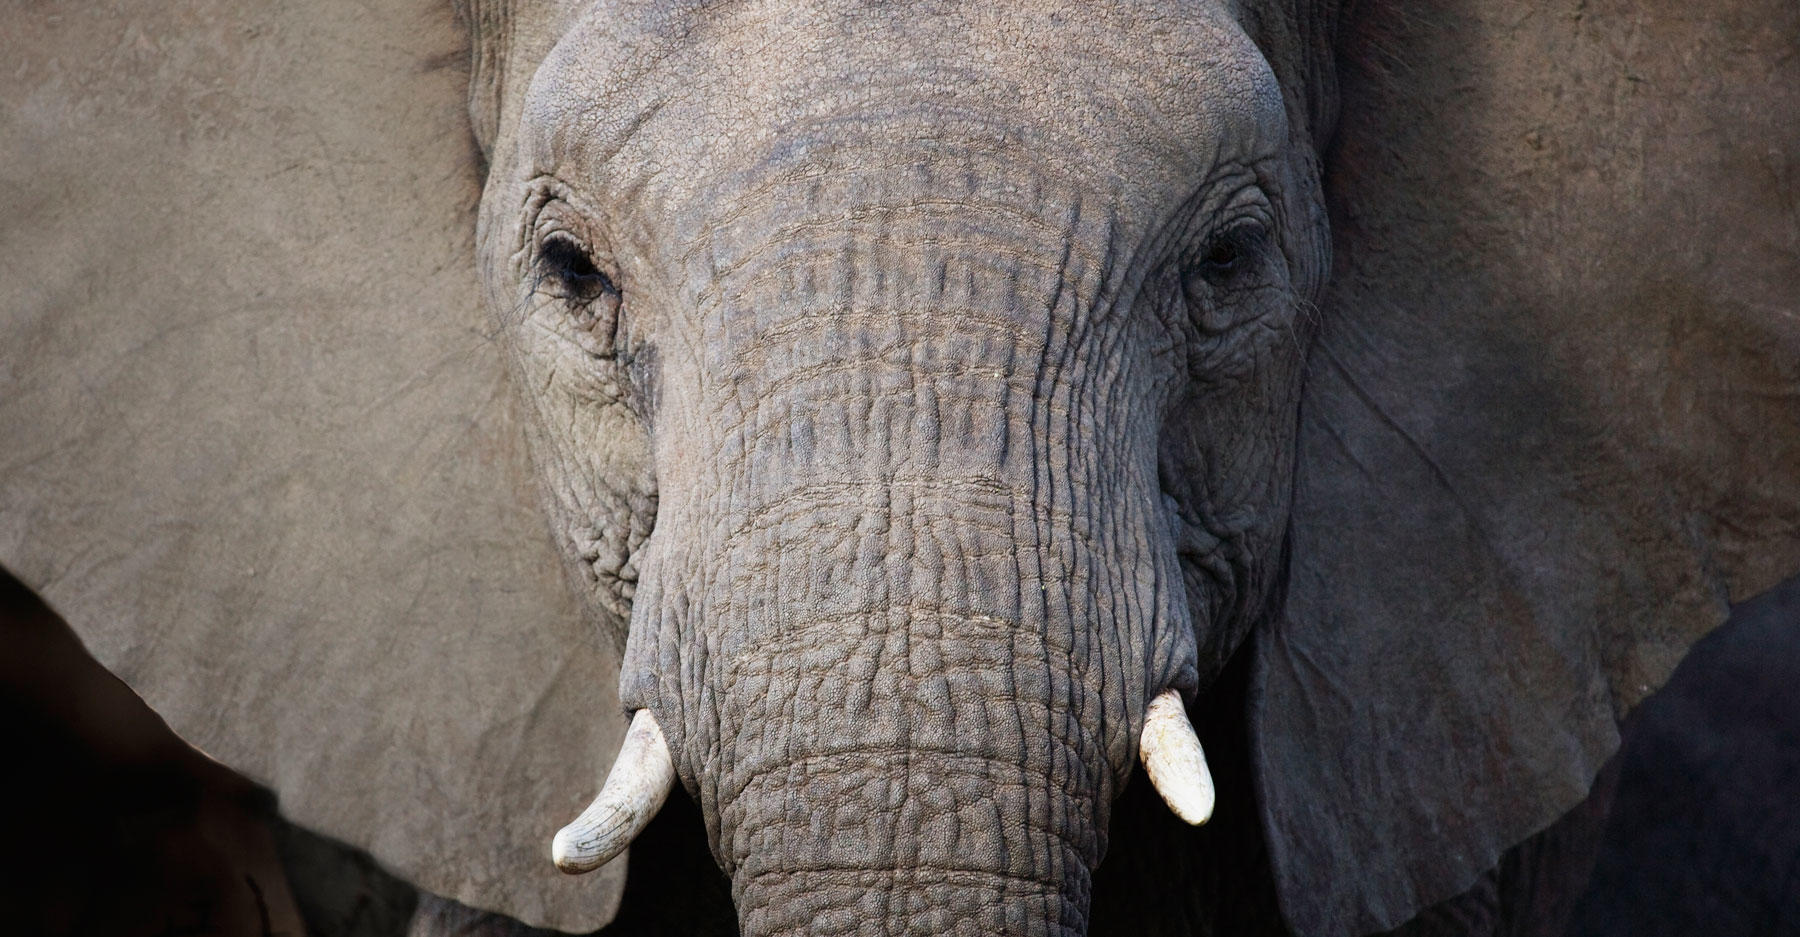 A young female elephant with short tusks in the Kruger National Park in South Africa.